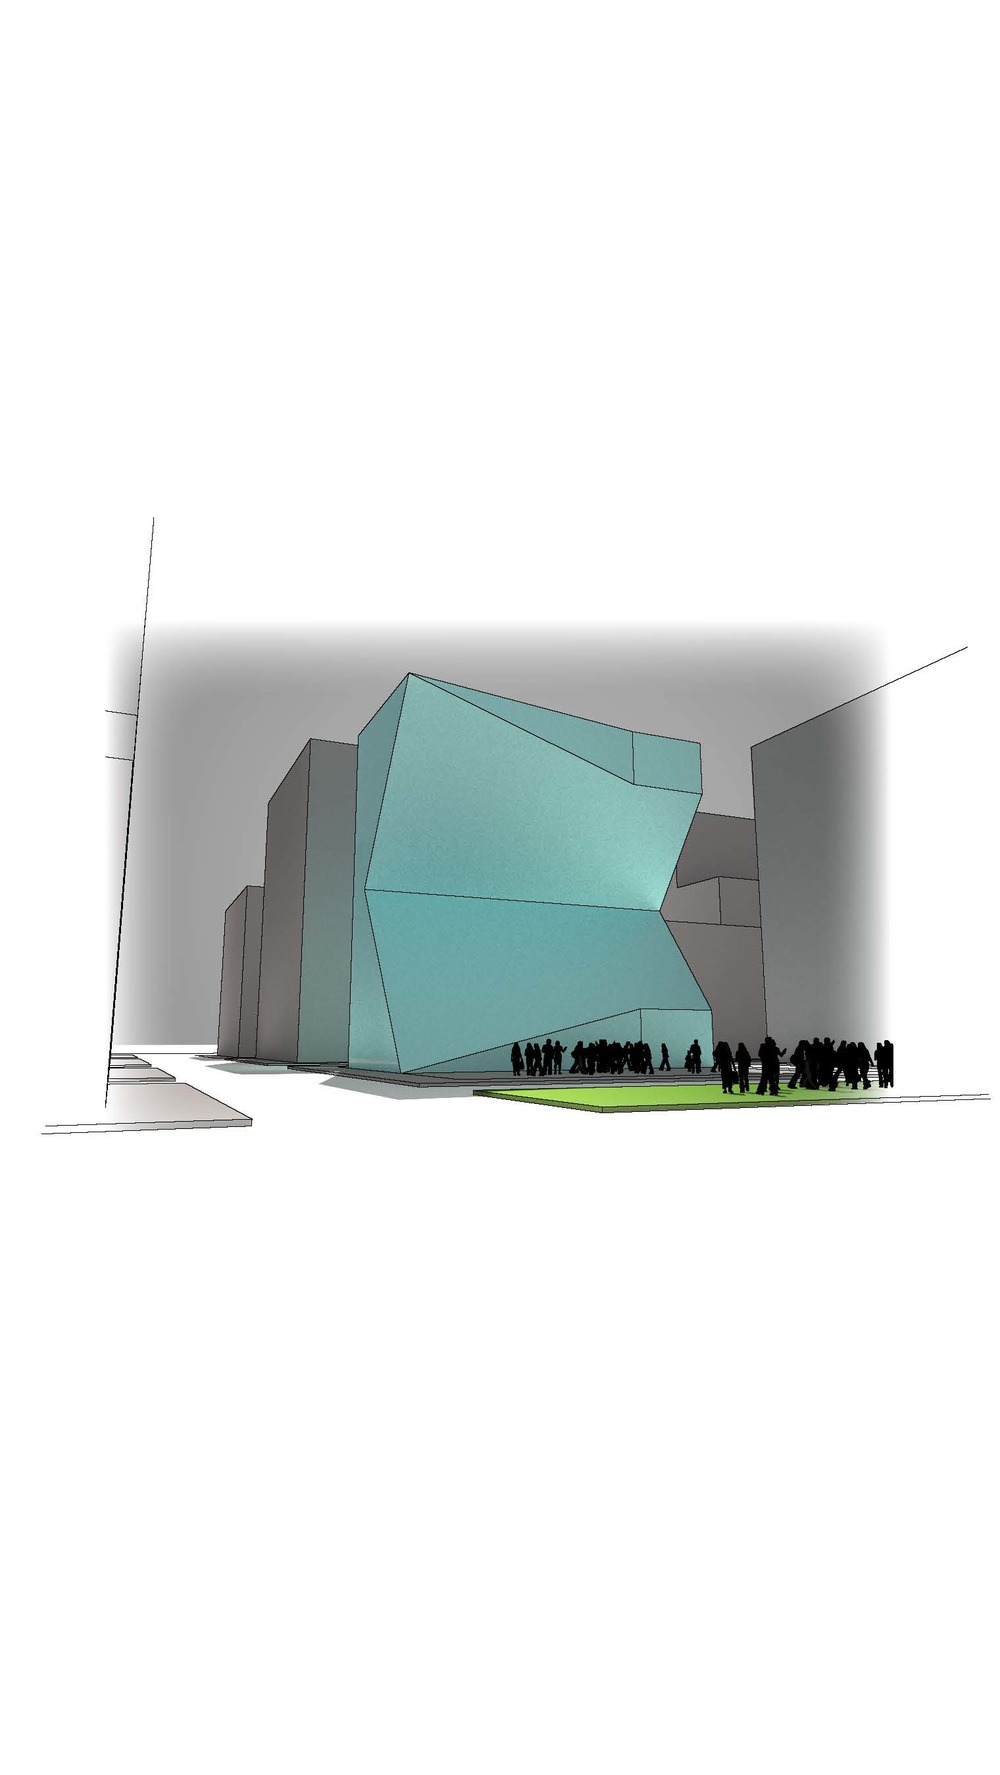 Rendered projection of mass || Sketchup, Maxwell, Illustrator